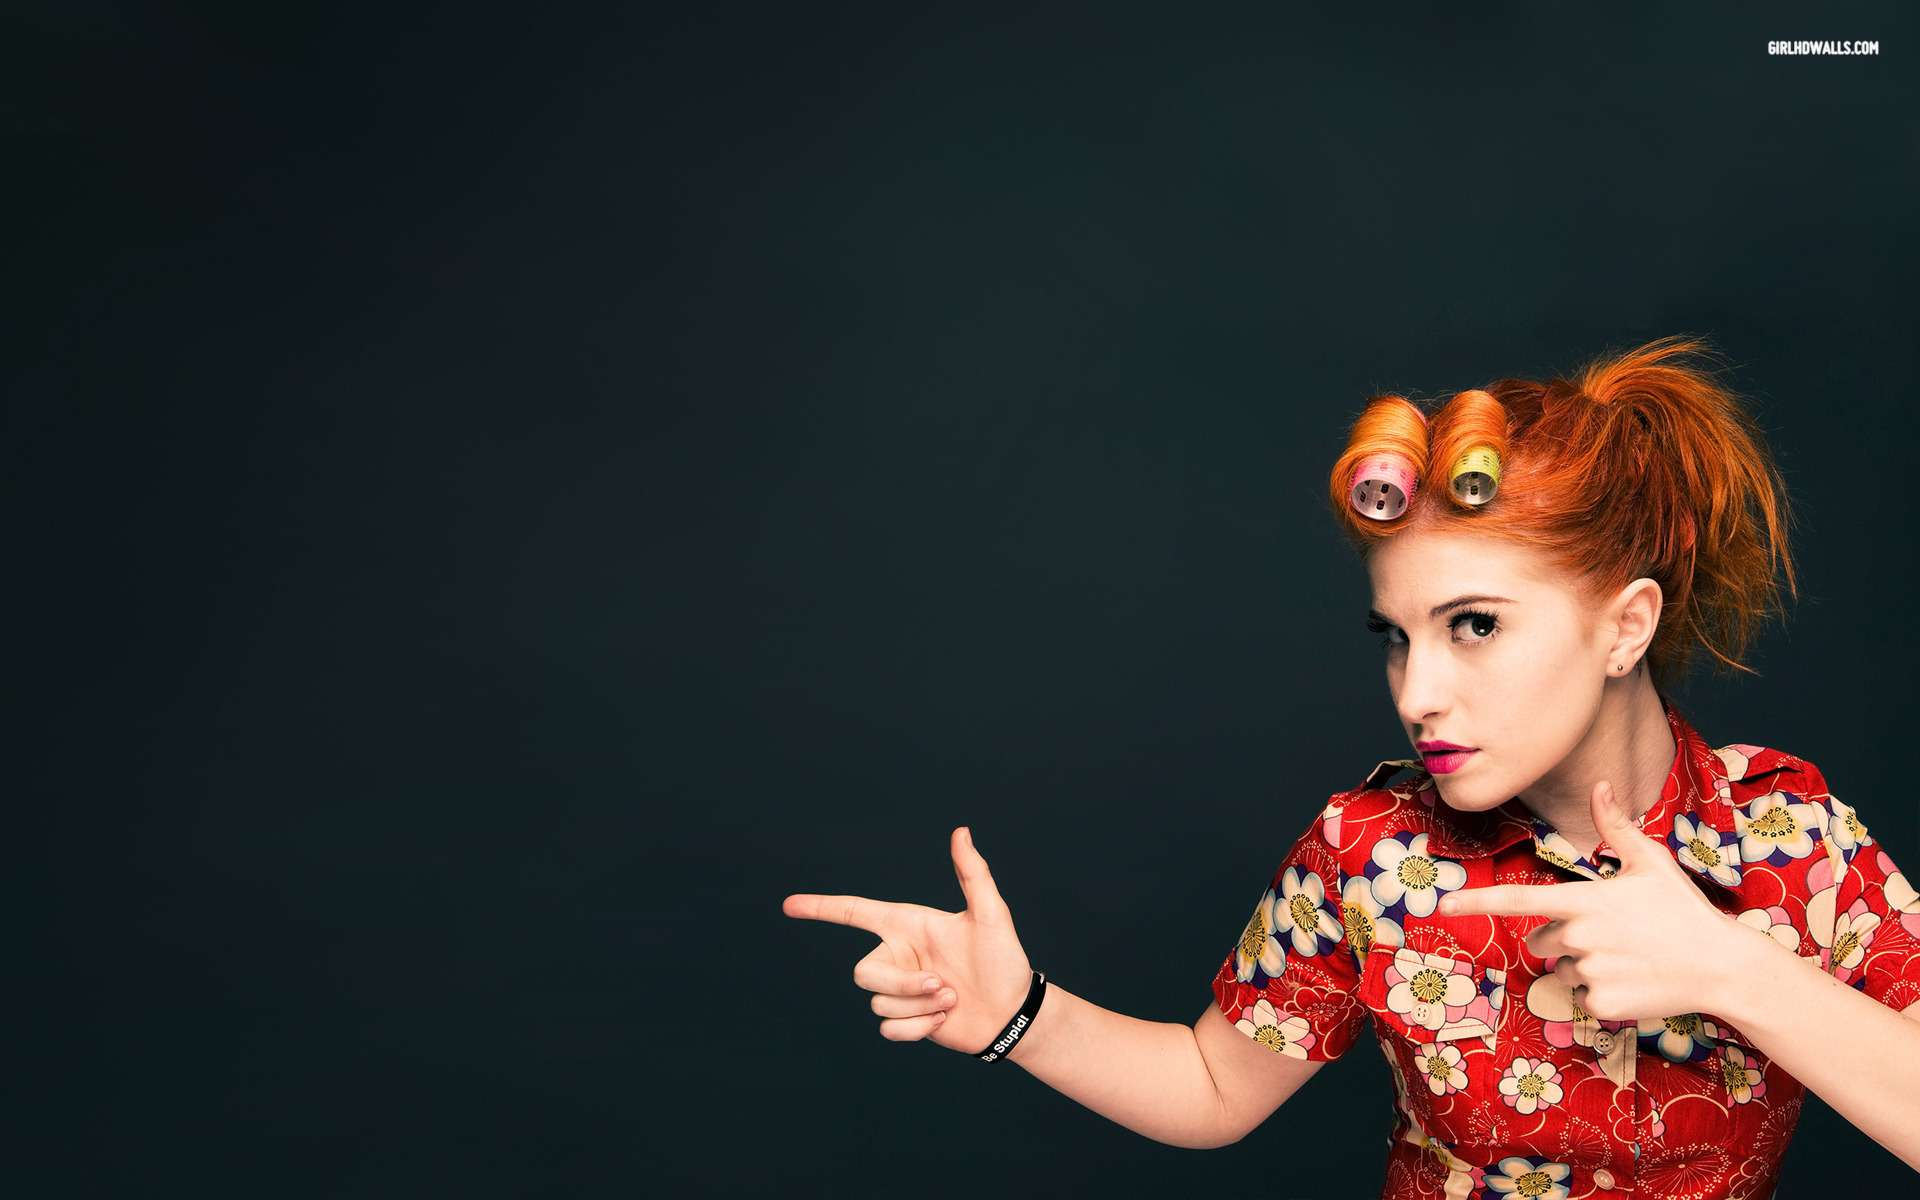 Free Download Most Beautiful Girl Wallpaper Hayley Williams 10 Wallpapers Hd Wallpapers